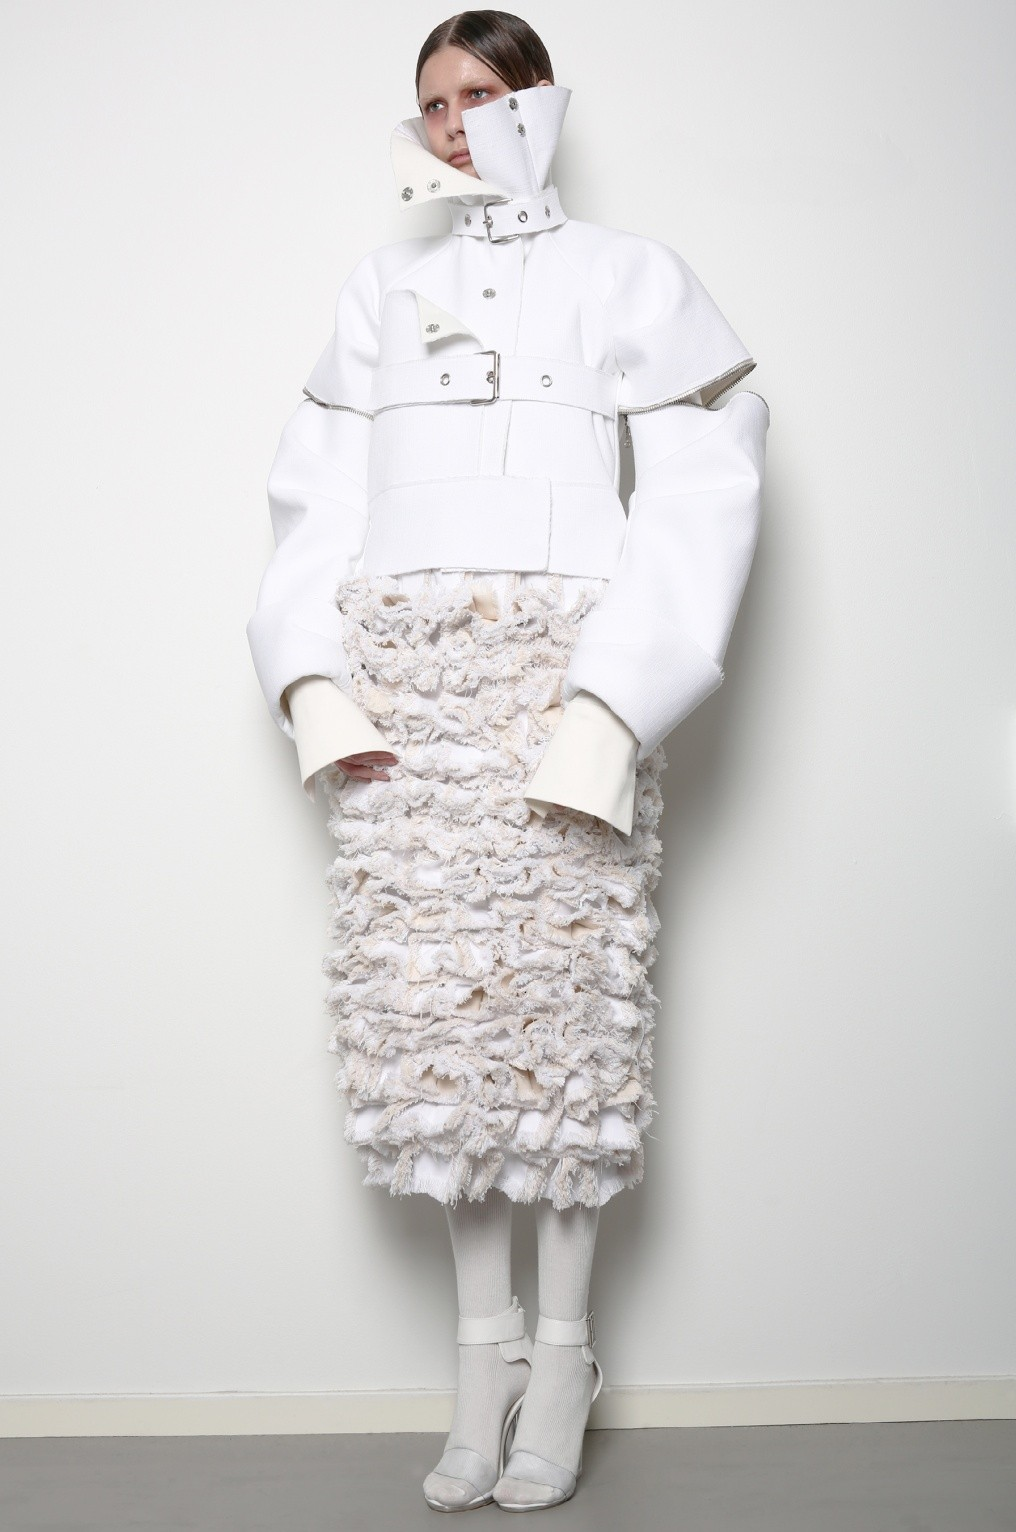 PATRIK GUGGENBERGER 2014 Autumn Winter Collection (2)